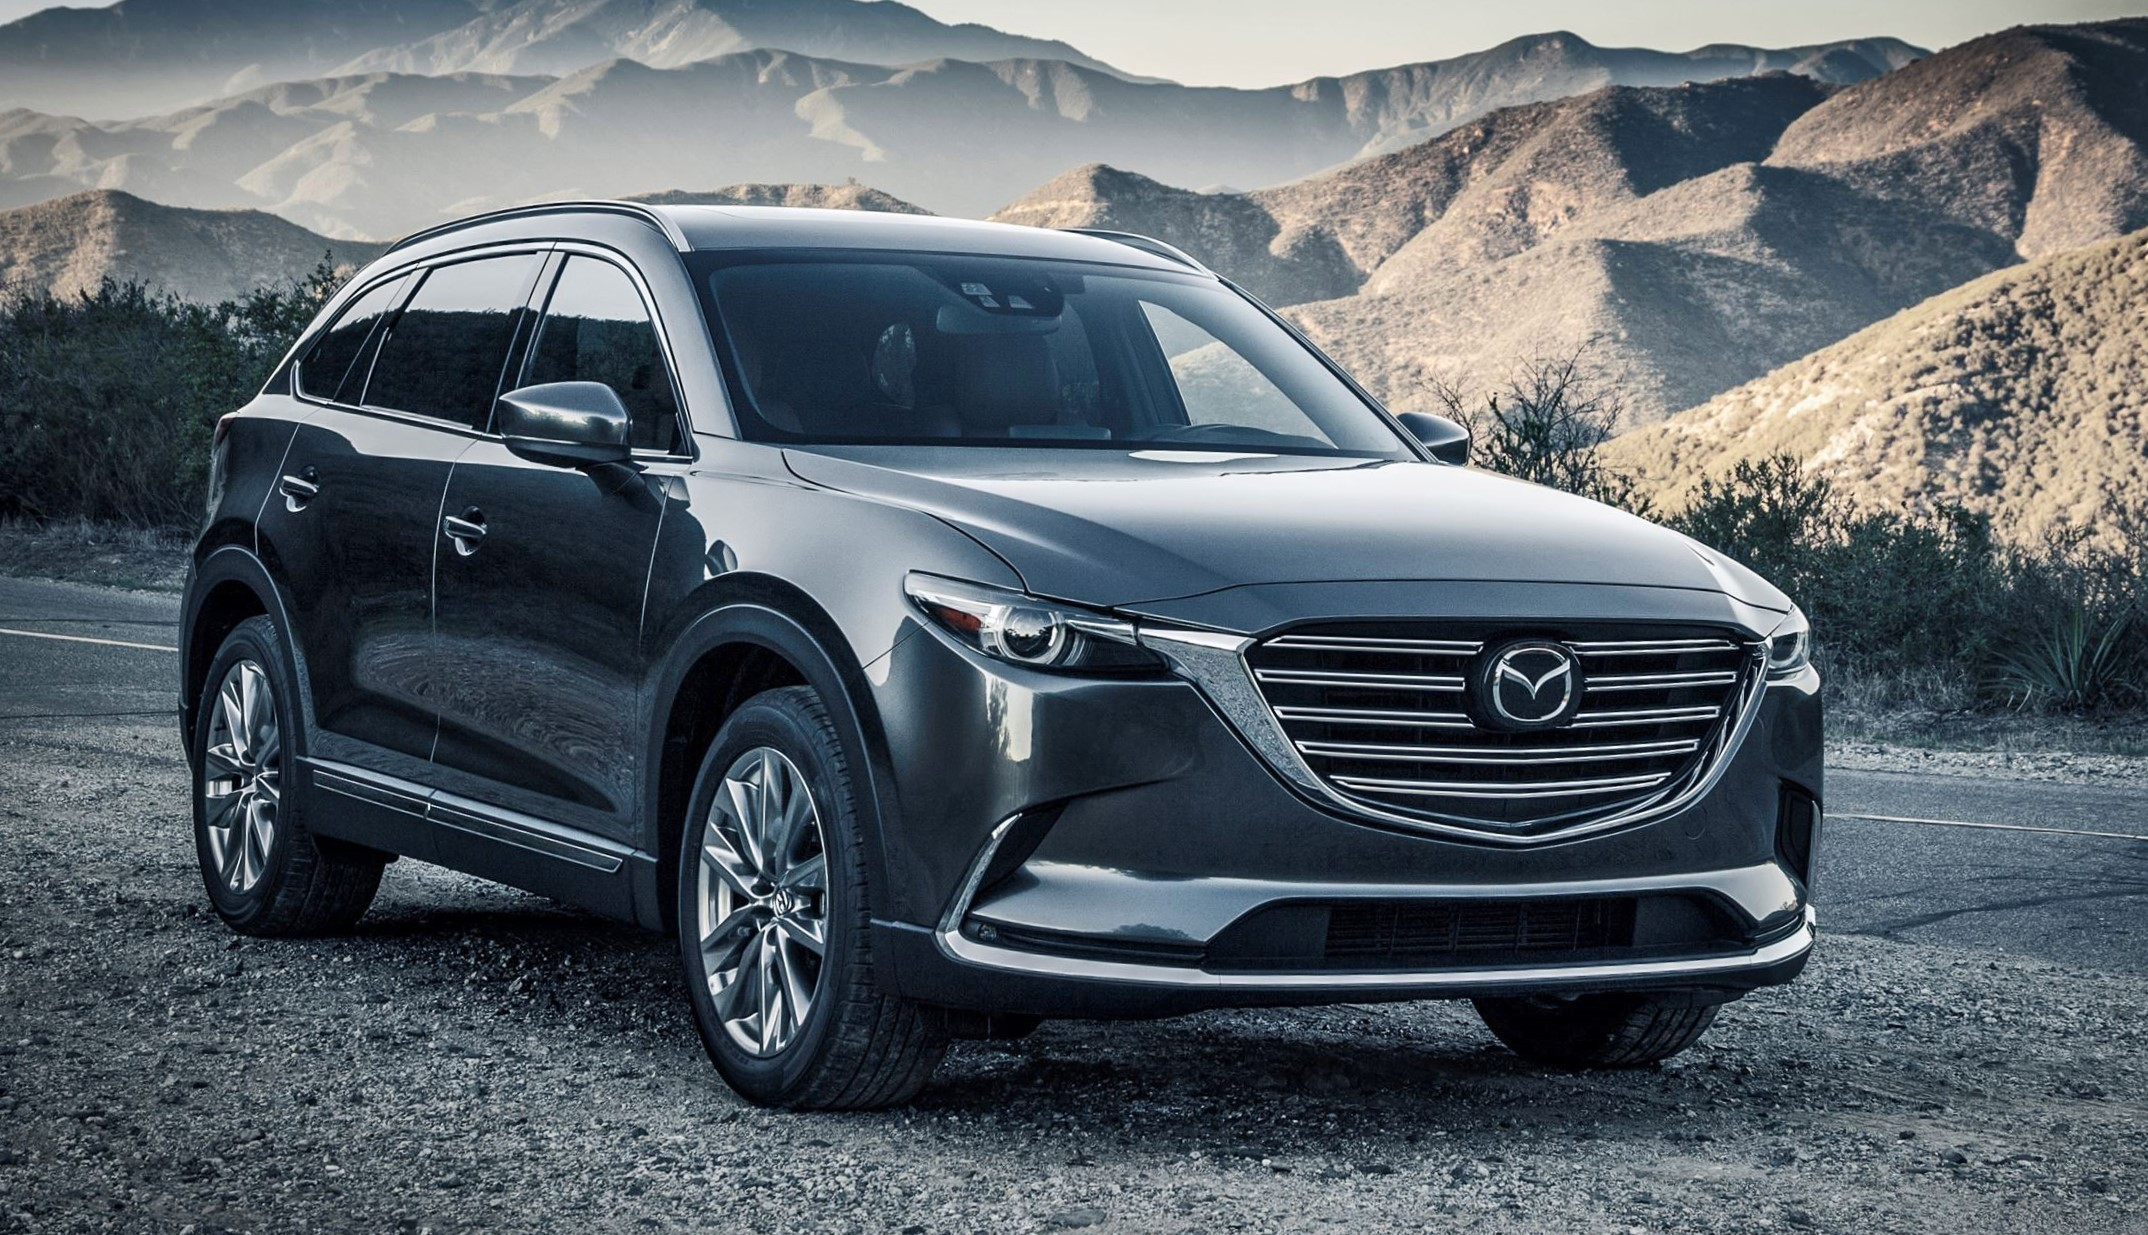 2017 mazda cx 9 revealed gorgeous redesign lux cabin and new turbo power. Black Bedroom Furniture Sets. Home Design Ideas